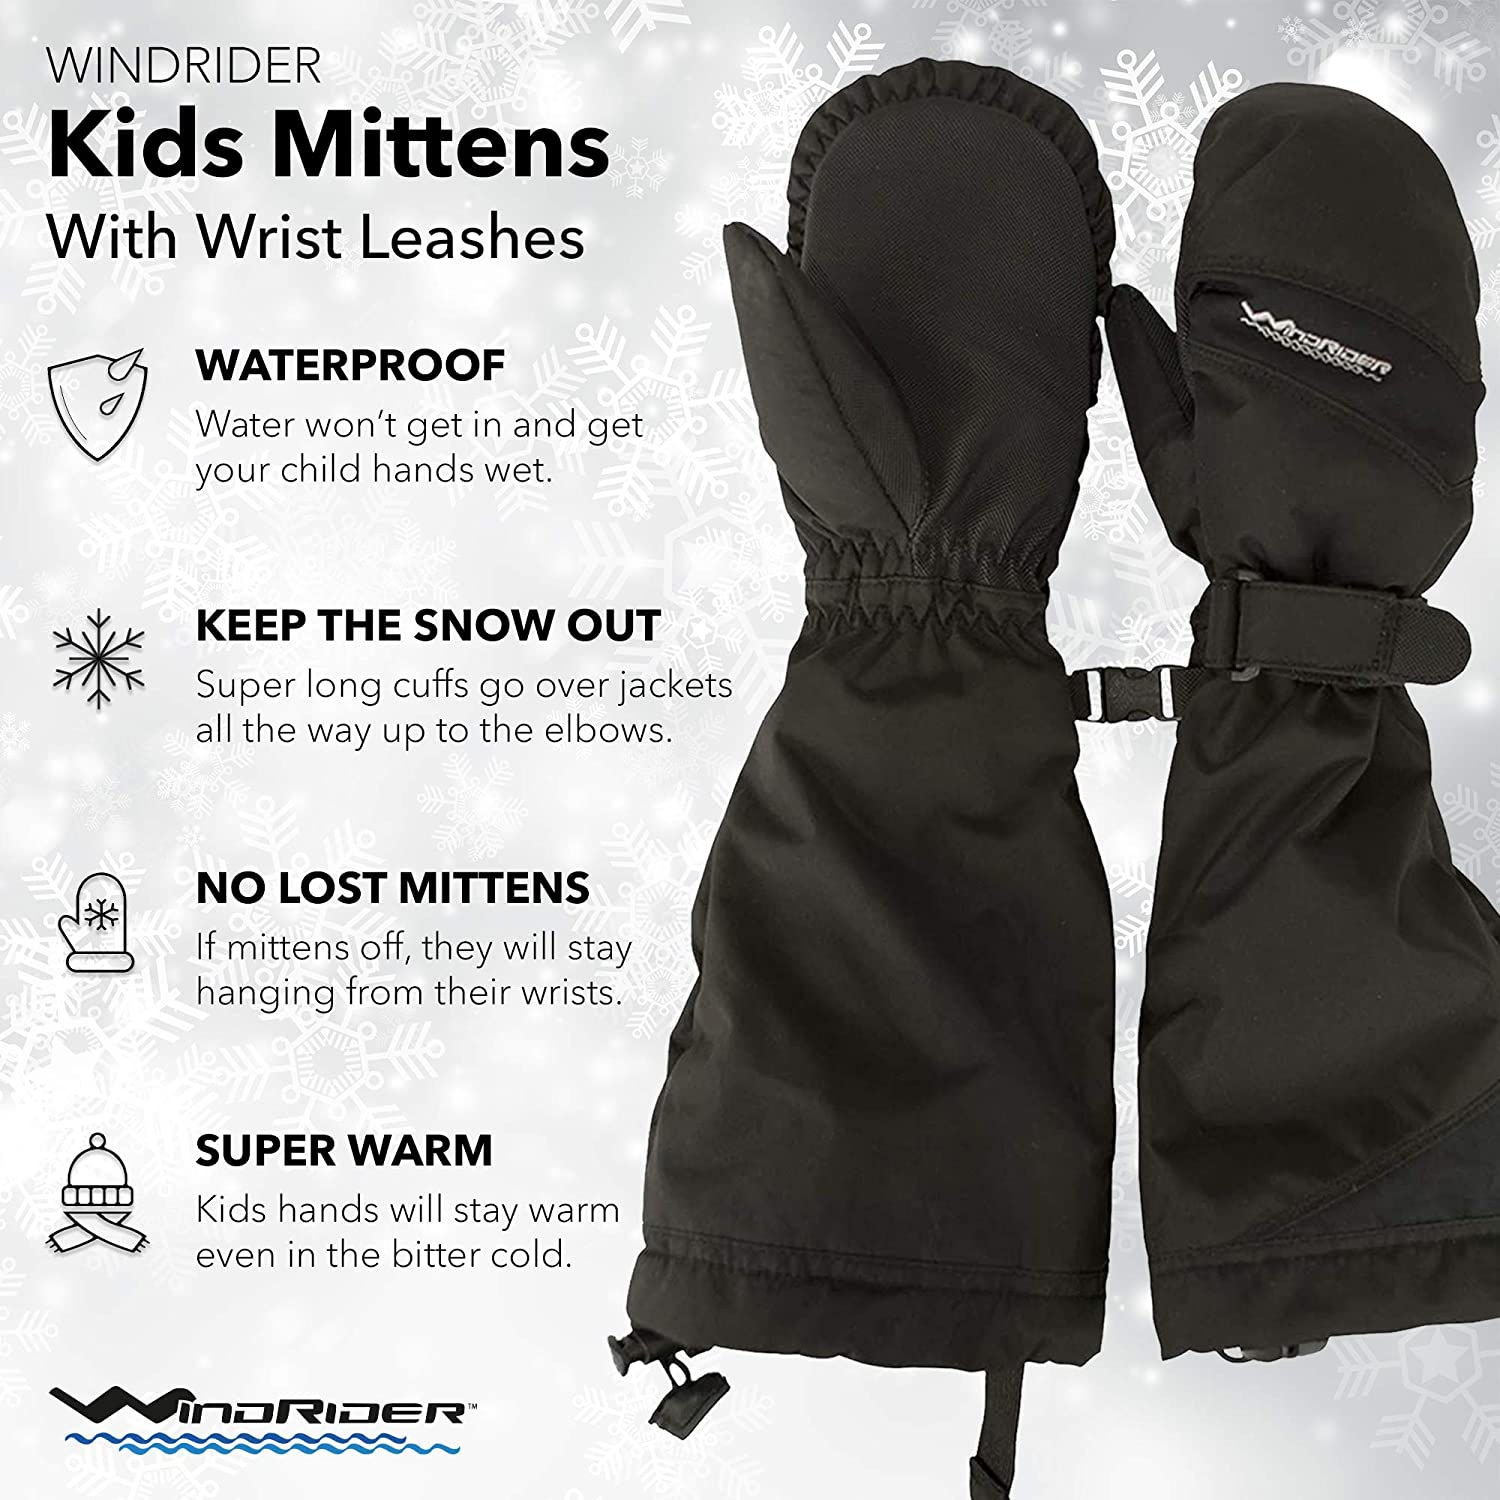 WindRider Toddler Waterproof Mittens   Elbow Length Cuff to Keep Snow Out   Wrist Leashes - No More Lost Mittens